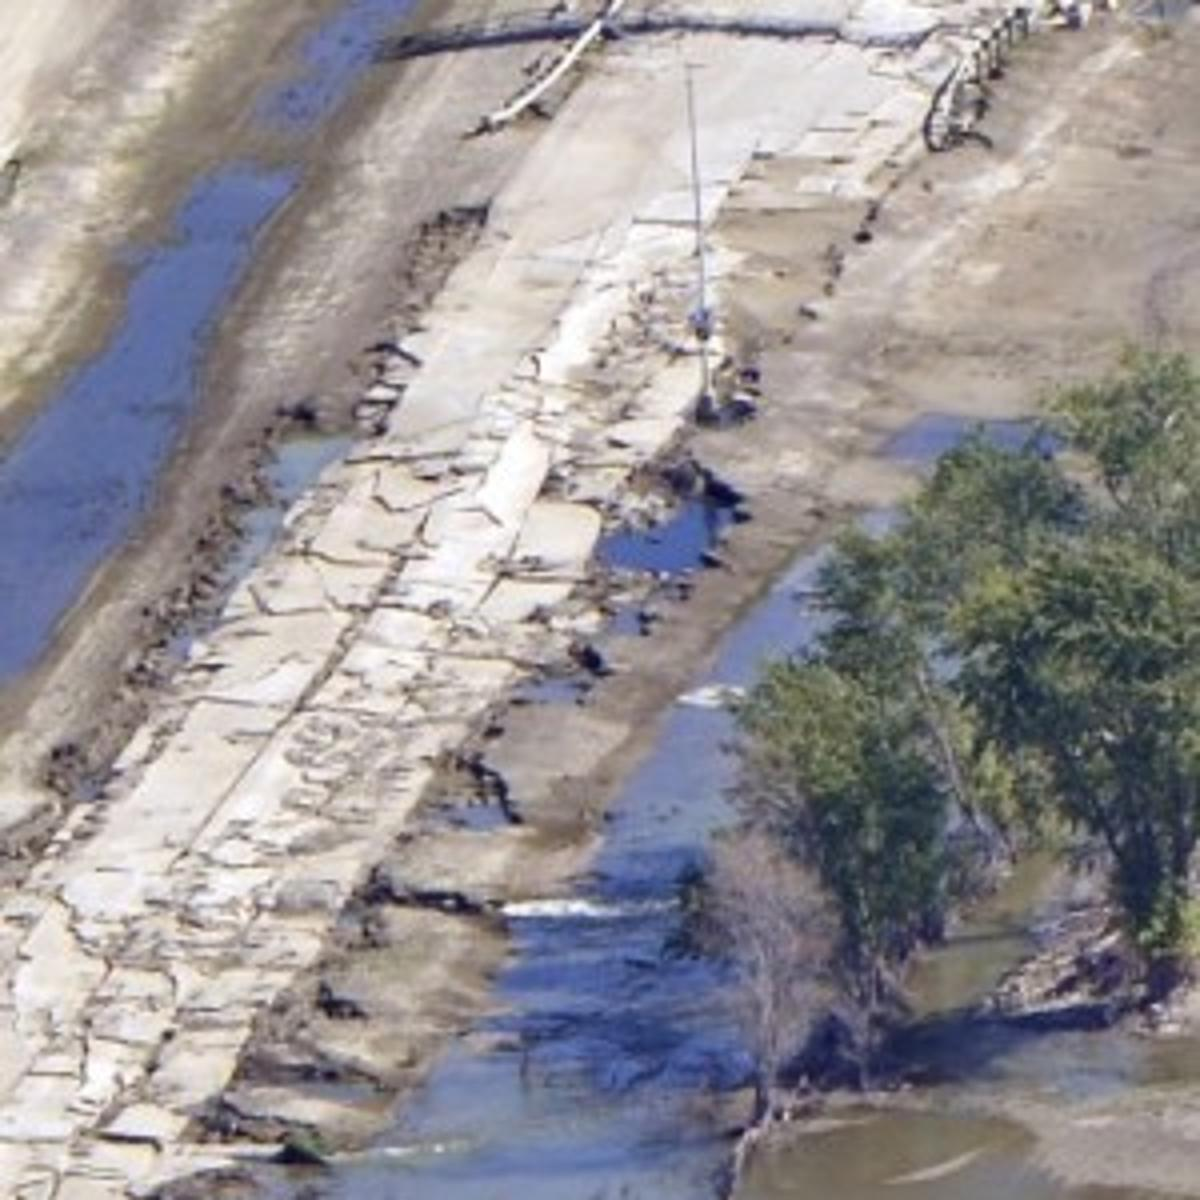 Iowa on fast track to repair flood-damaged roads | A1